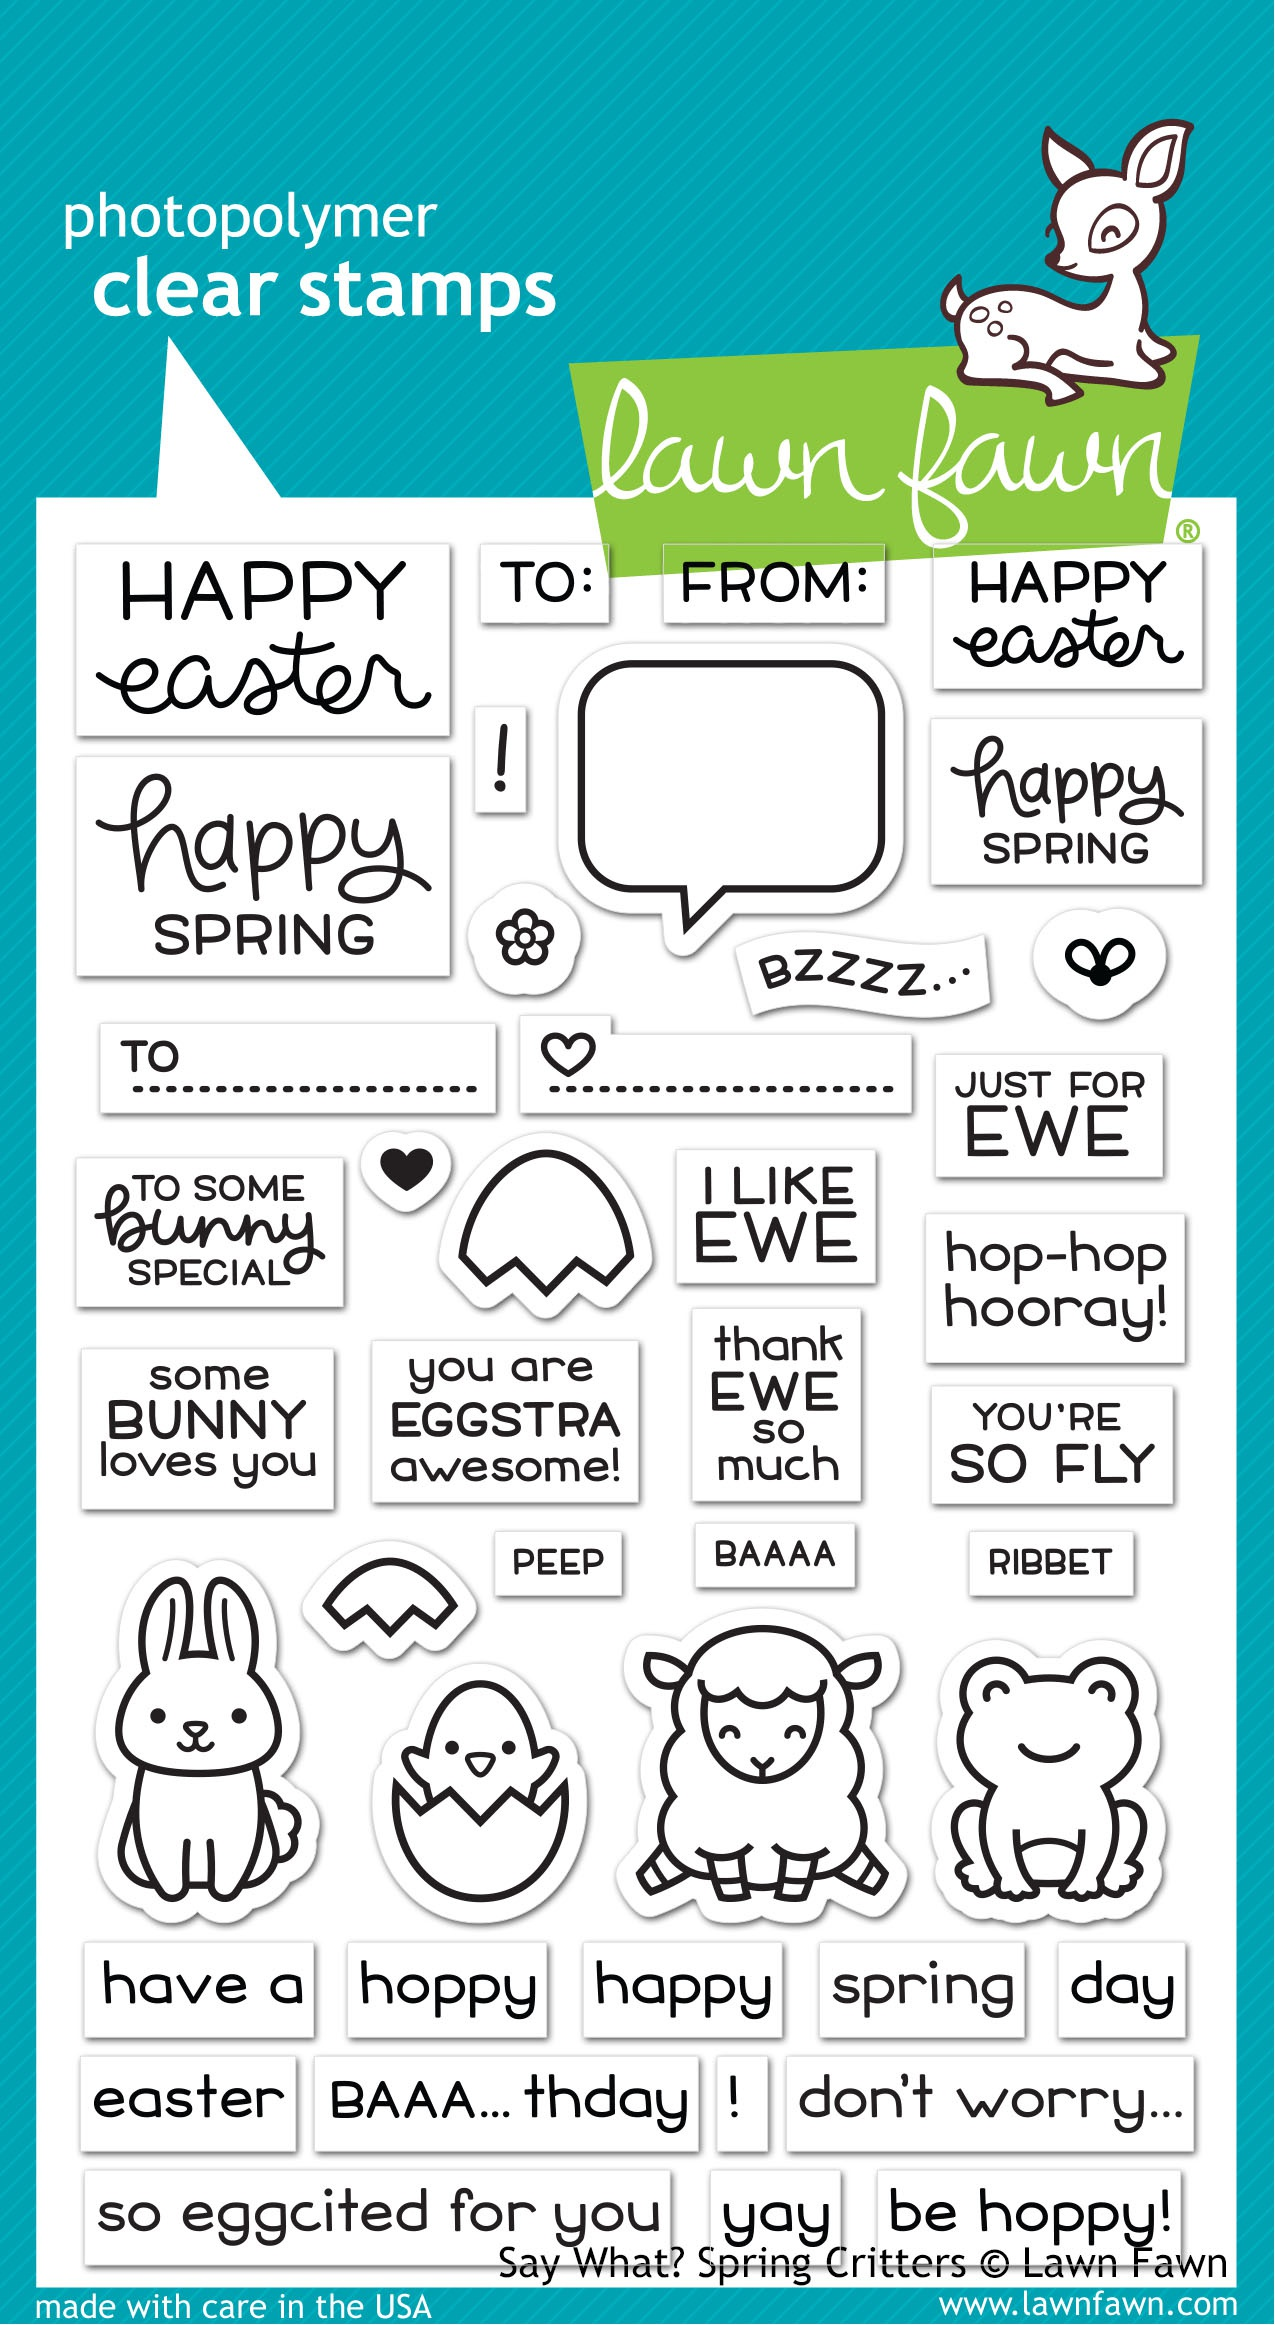 Lawn Fawn Clear Stamps 4X6-Say What? Spring Critters